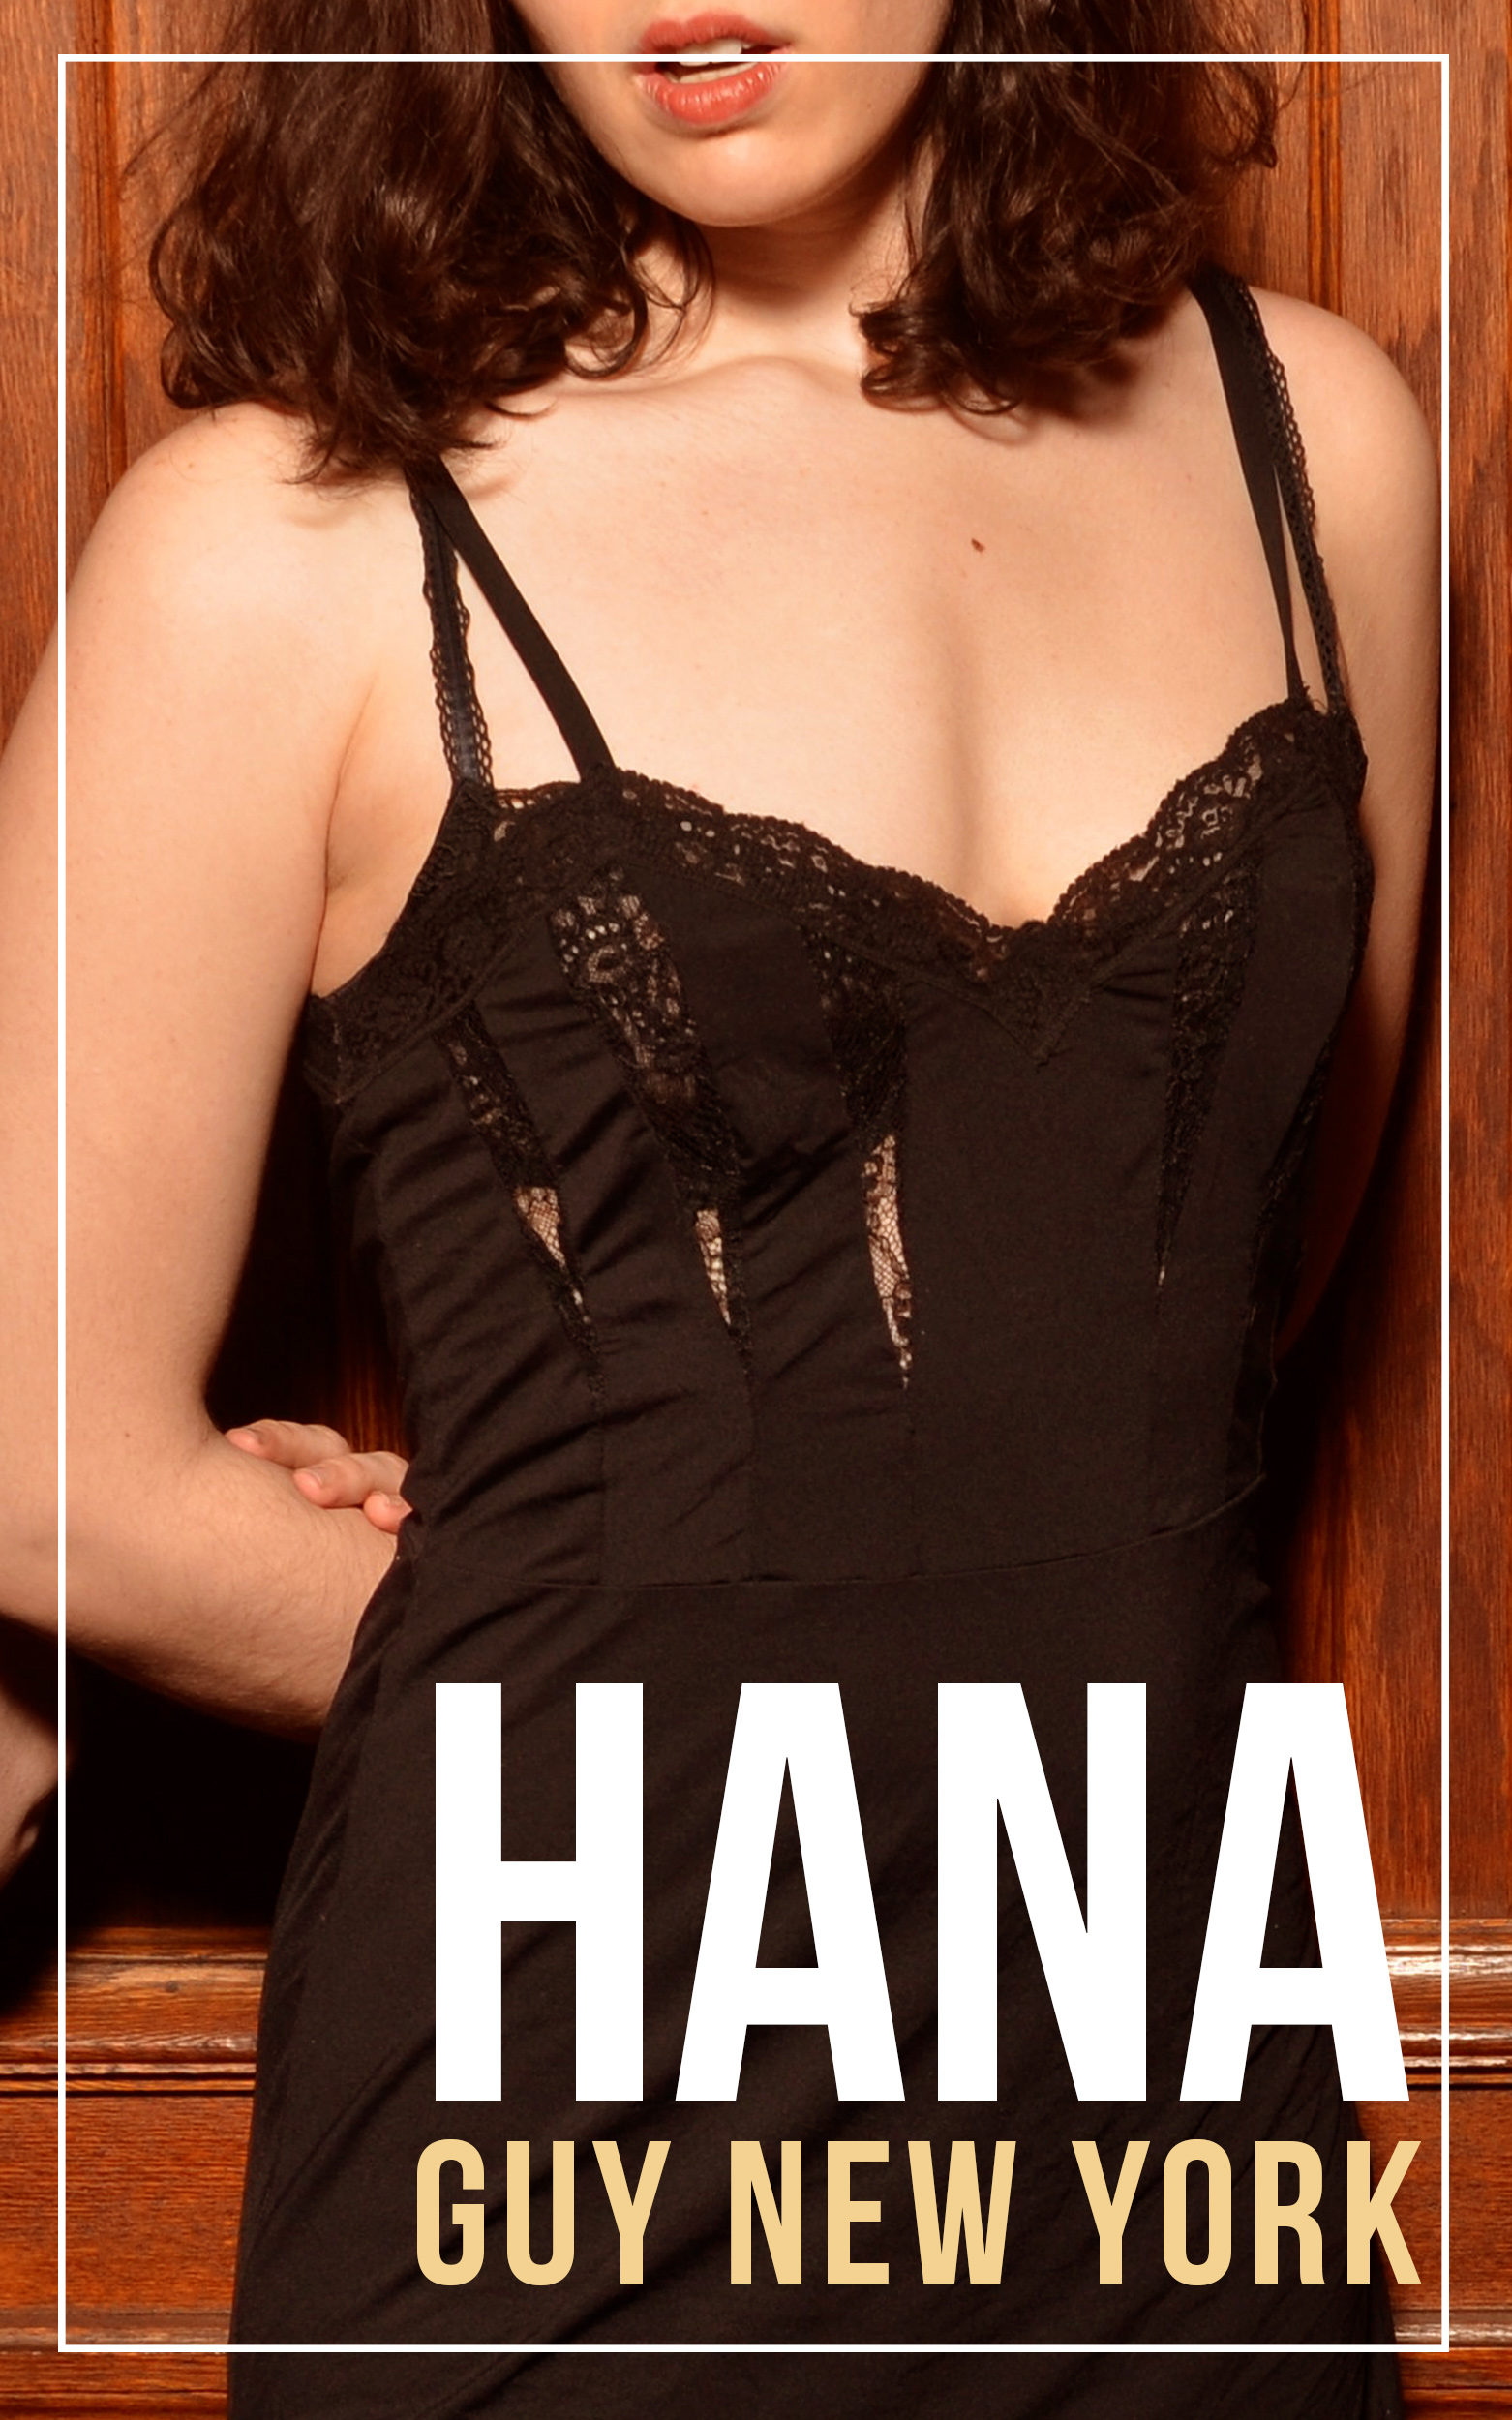 Hana: Polyamory and Erotica in NYC